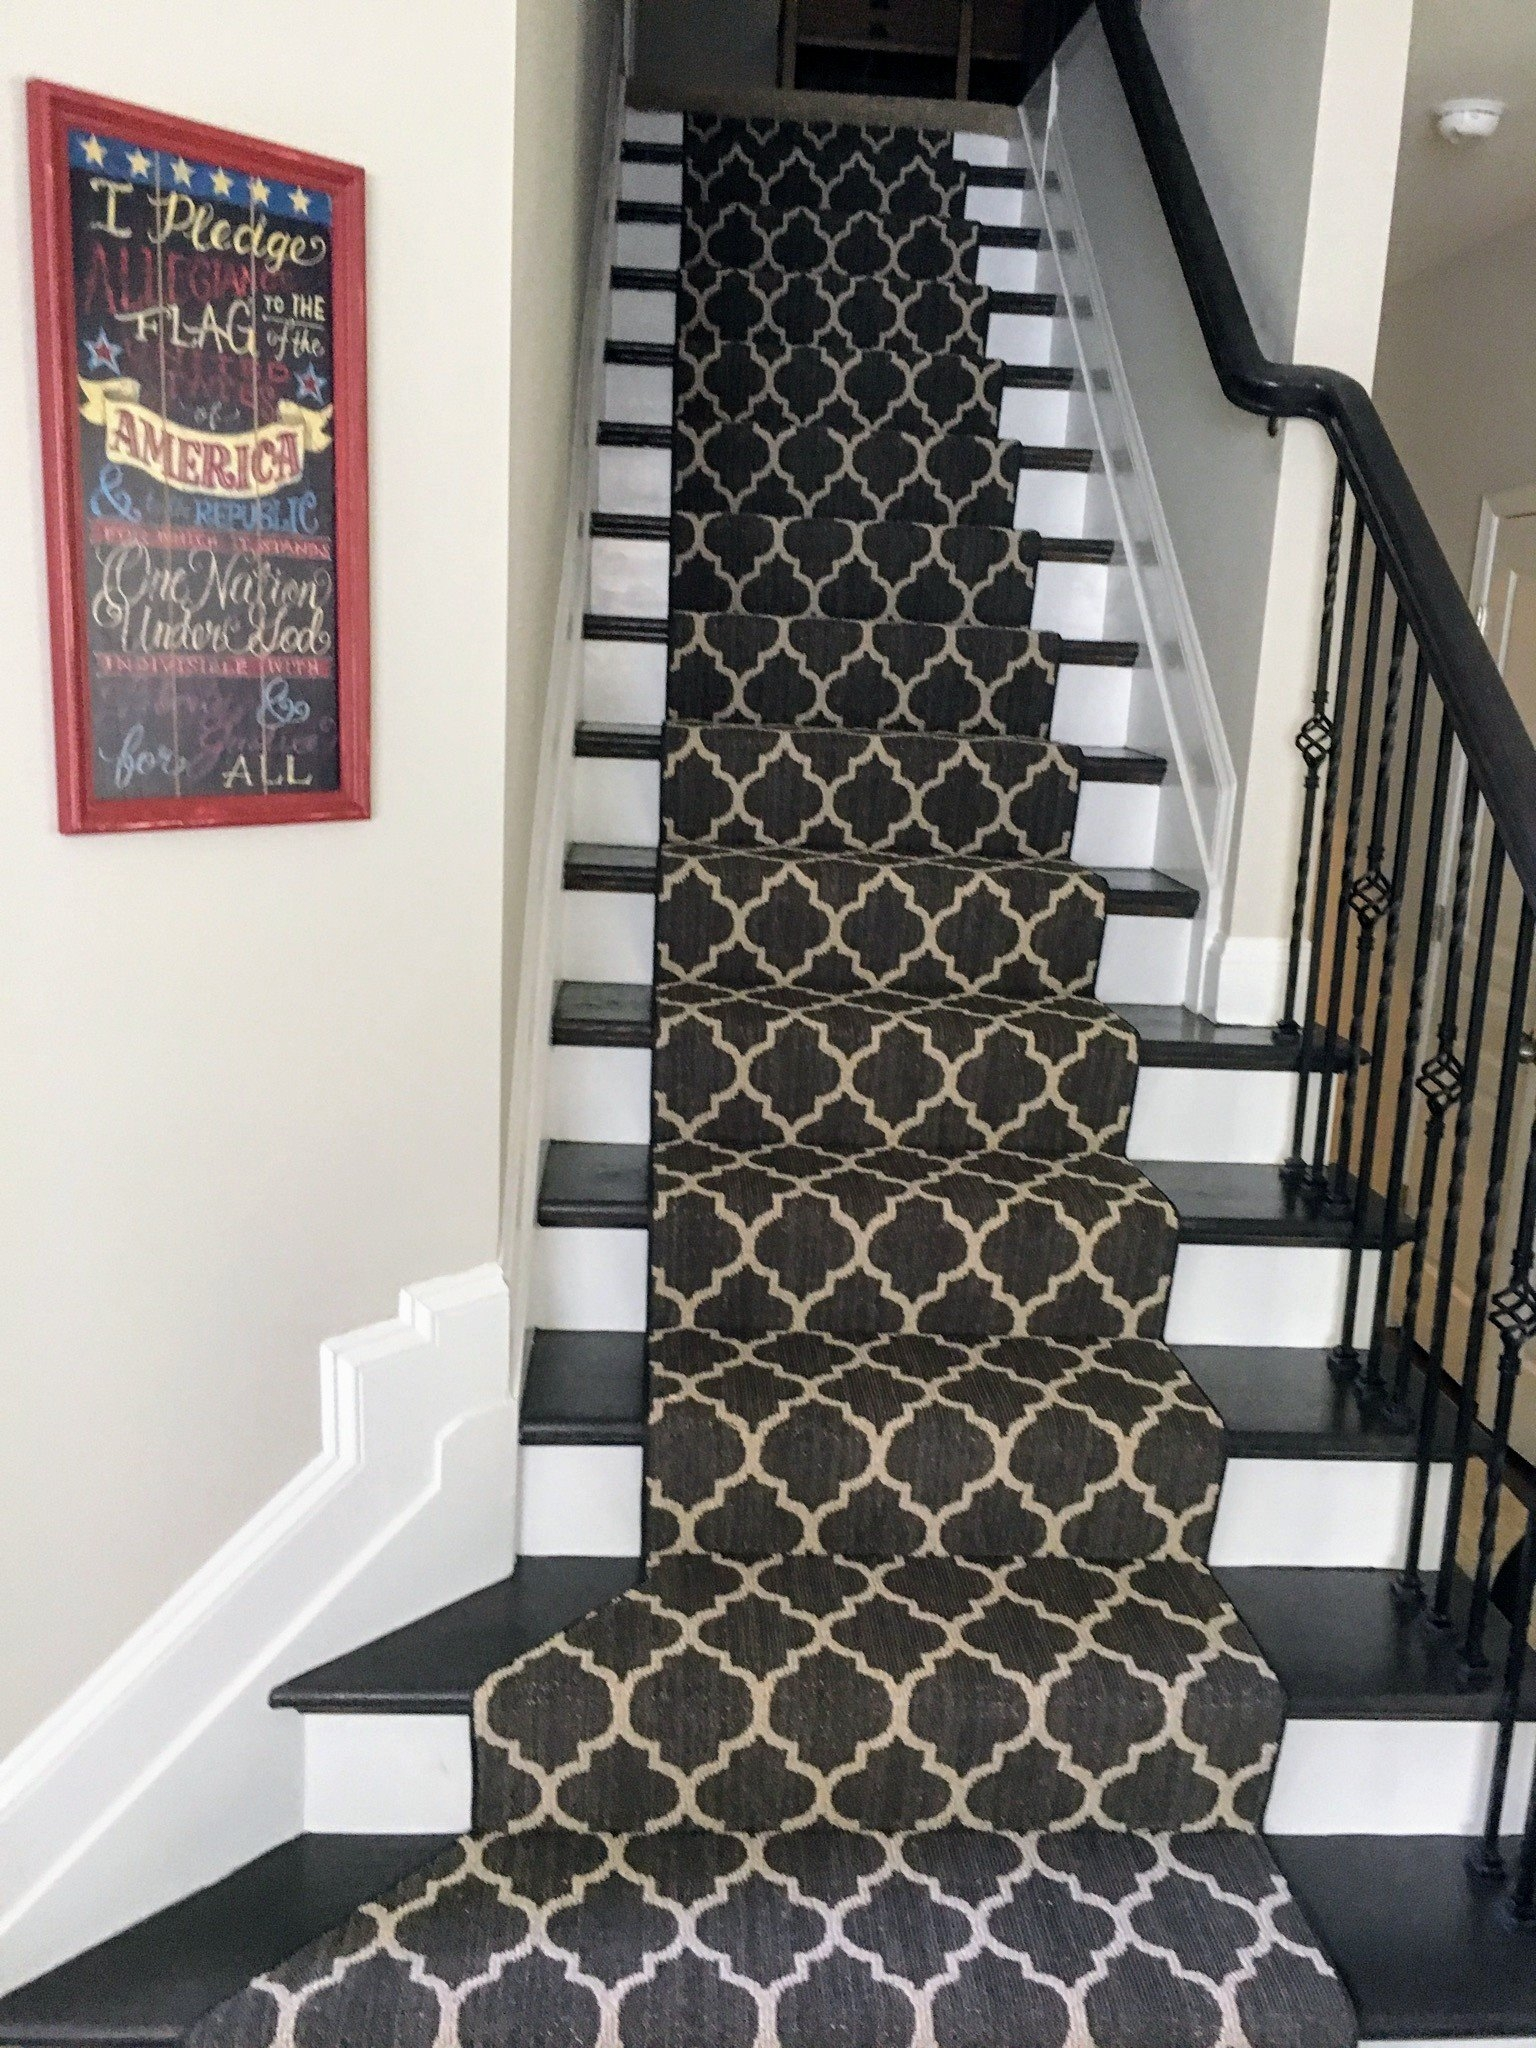 Tuftex Carpet Stair Runner — Beers Flooring   Carpet And Tile Stairs   Gray   Backsplash   Carpeted   Tiled Hallway Carpet   Before And After